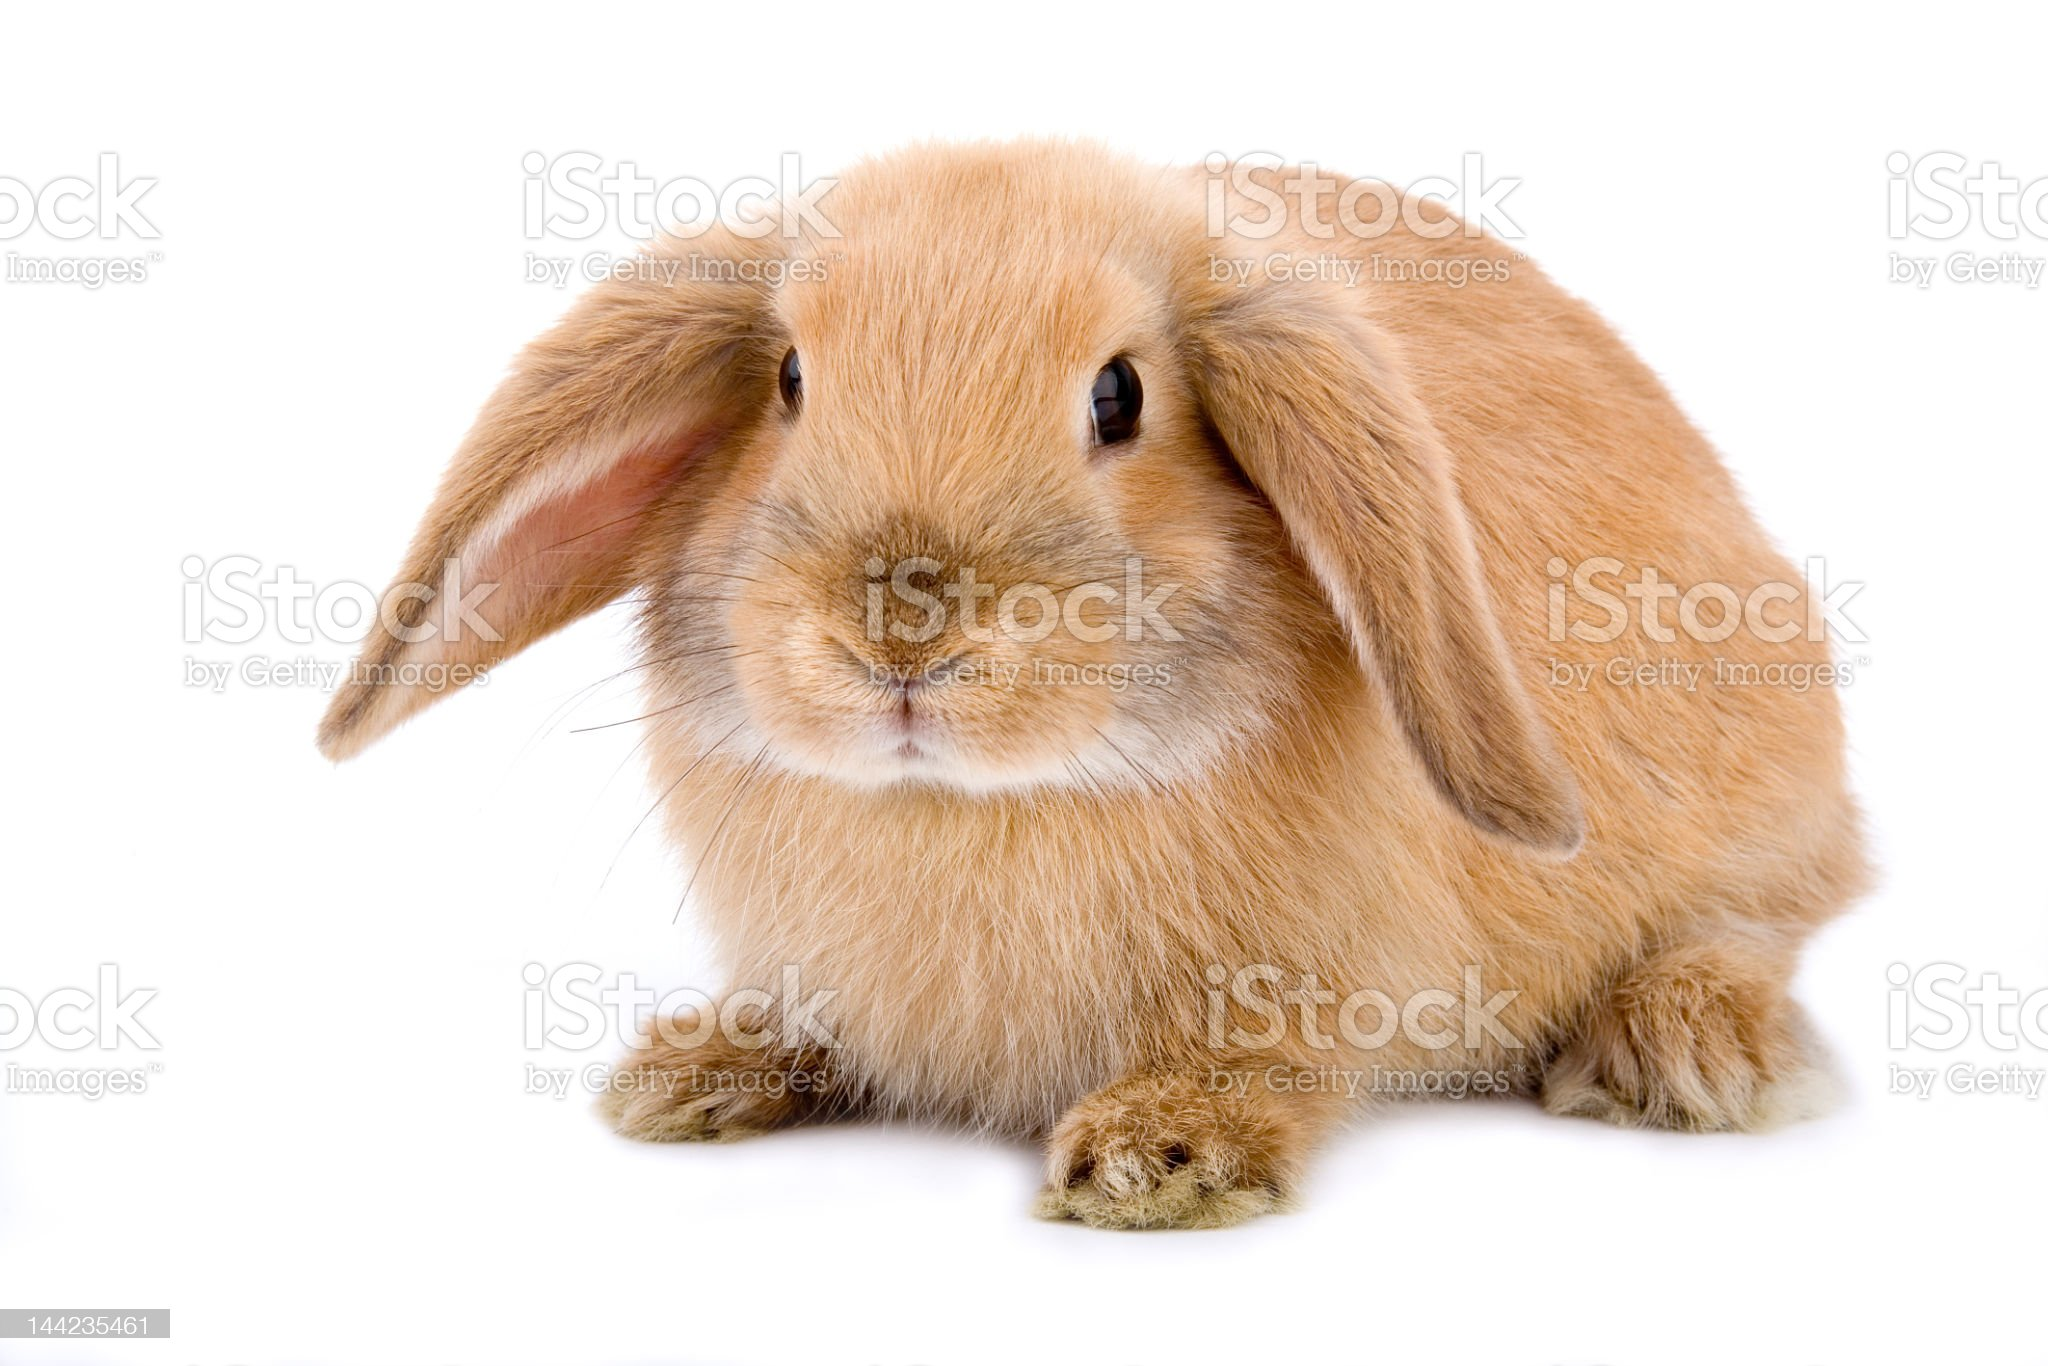 Brown rabbit with ears down on white background  royalty-free stock photo